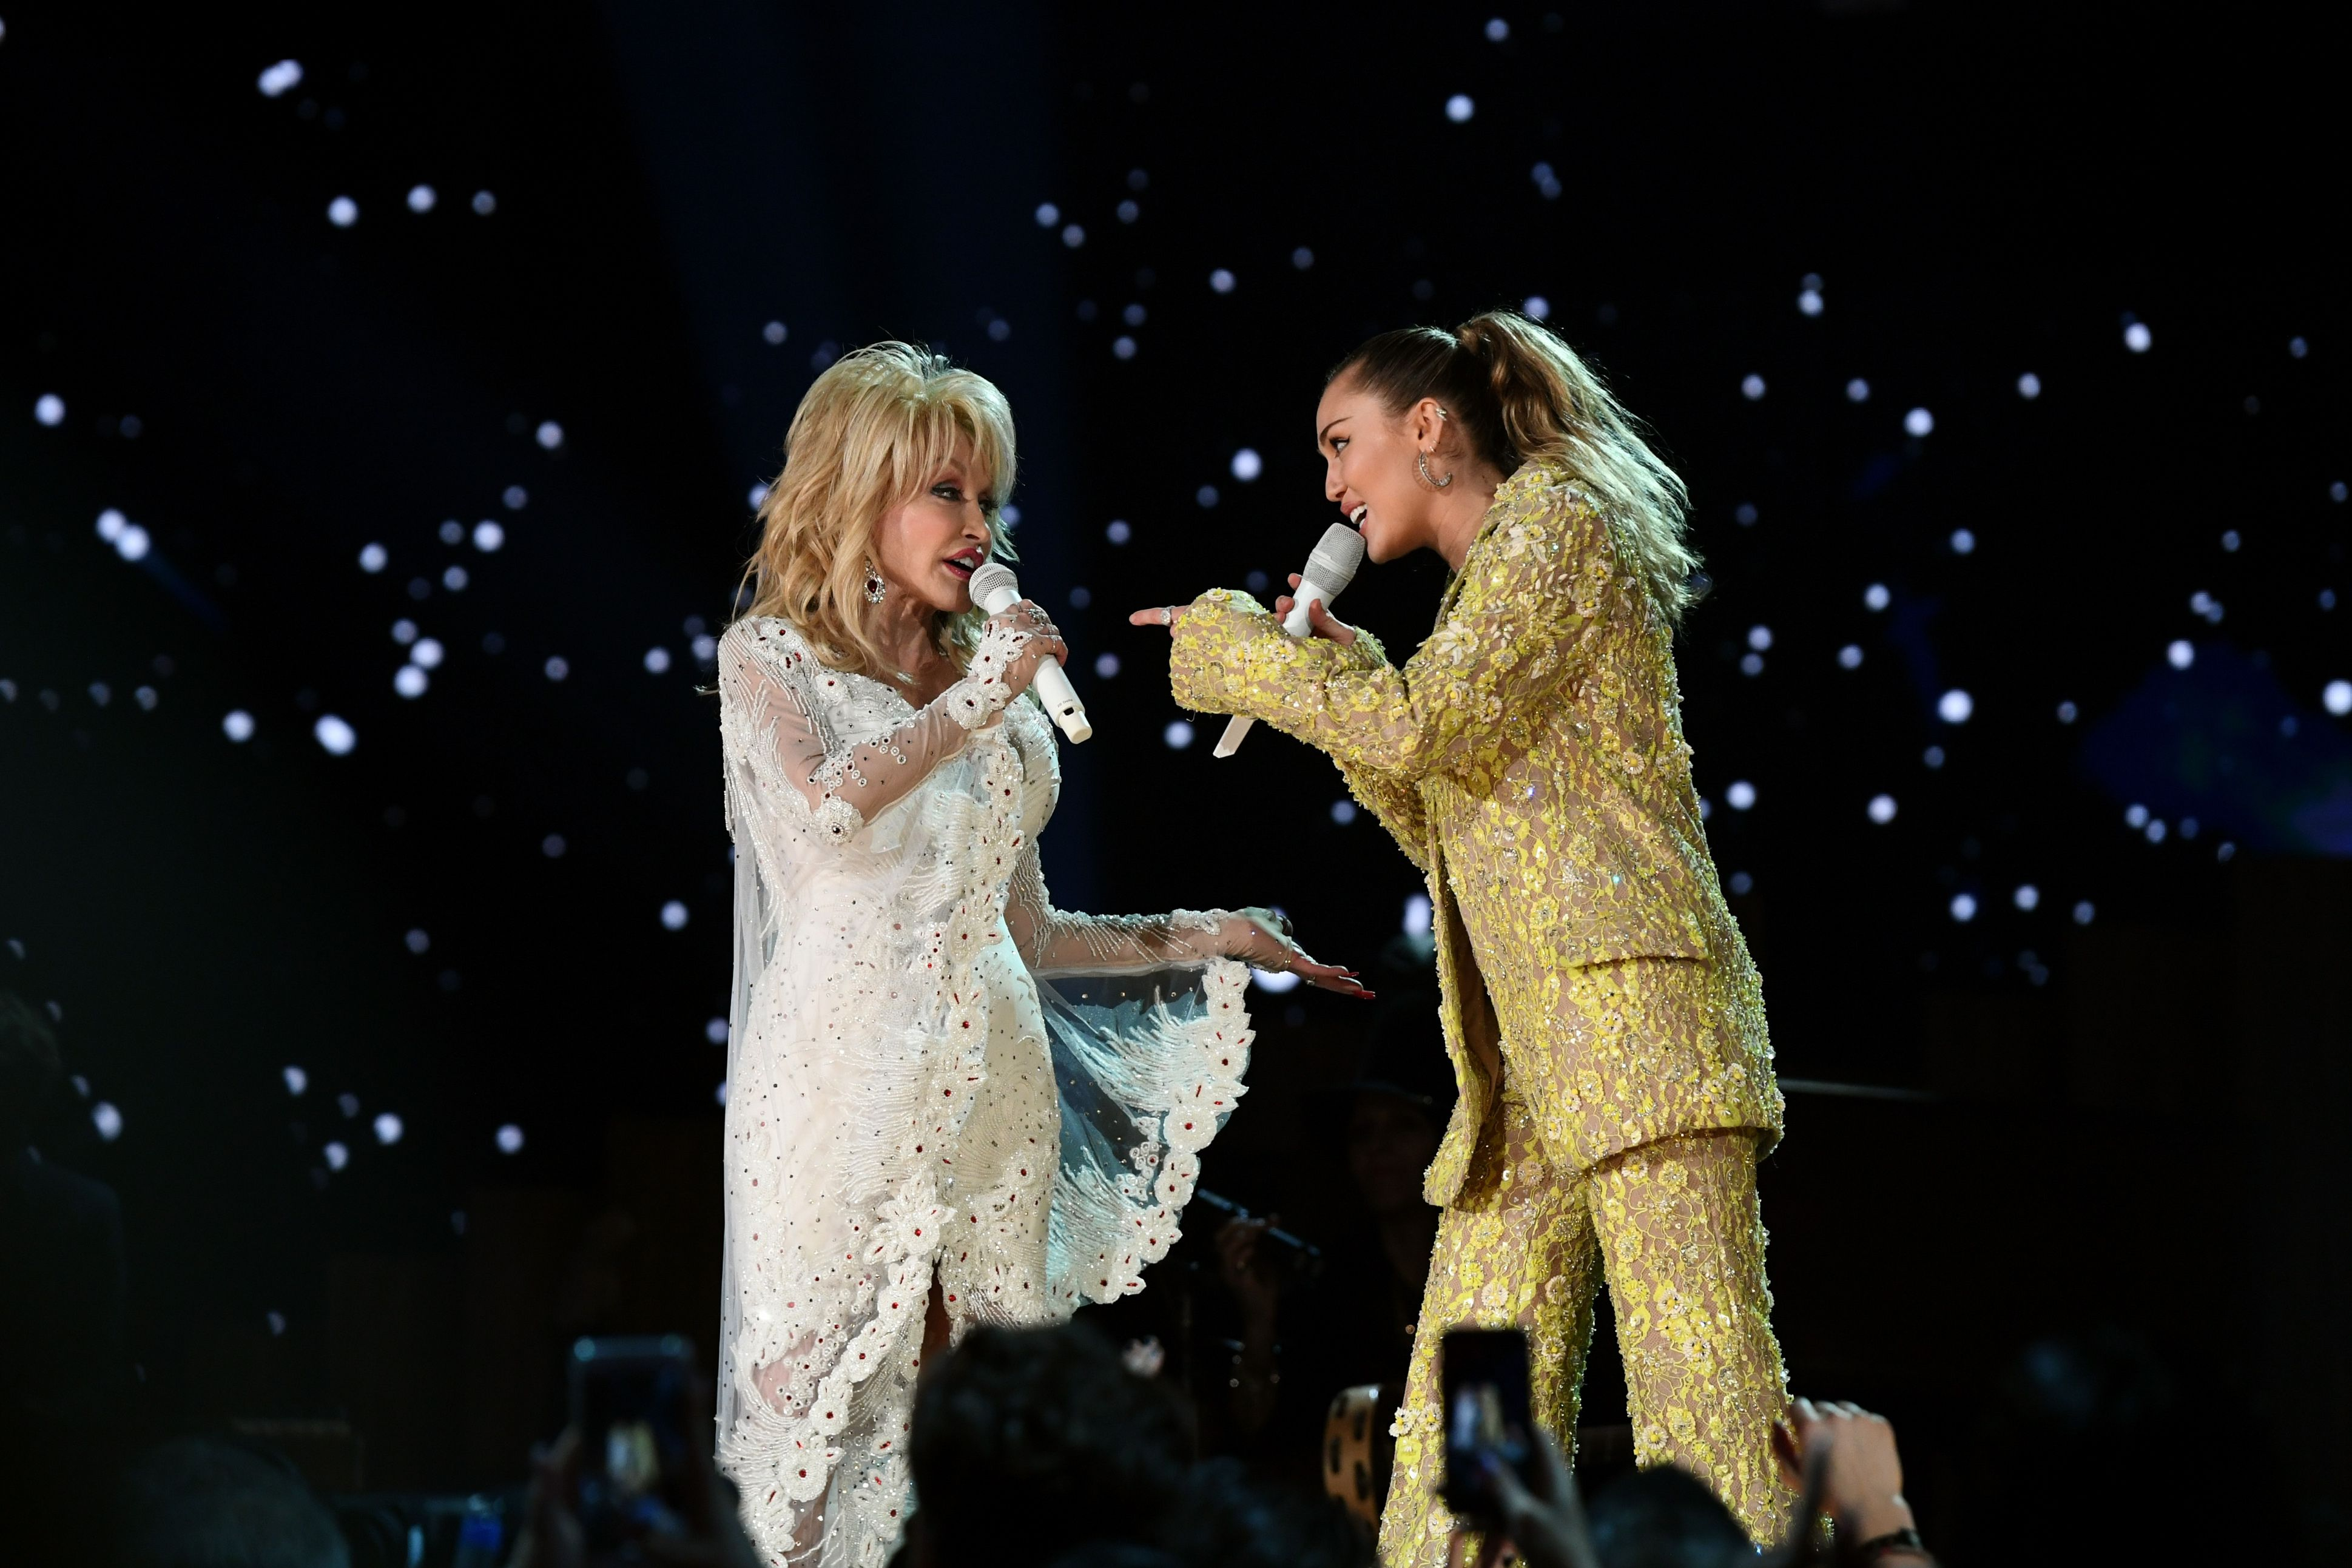 Are Dolly Parton And Miley Cyrus Related Dolly Parton S Relationship With Miley Cyrus